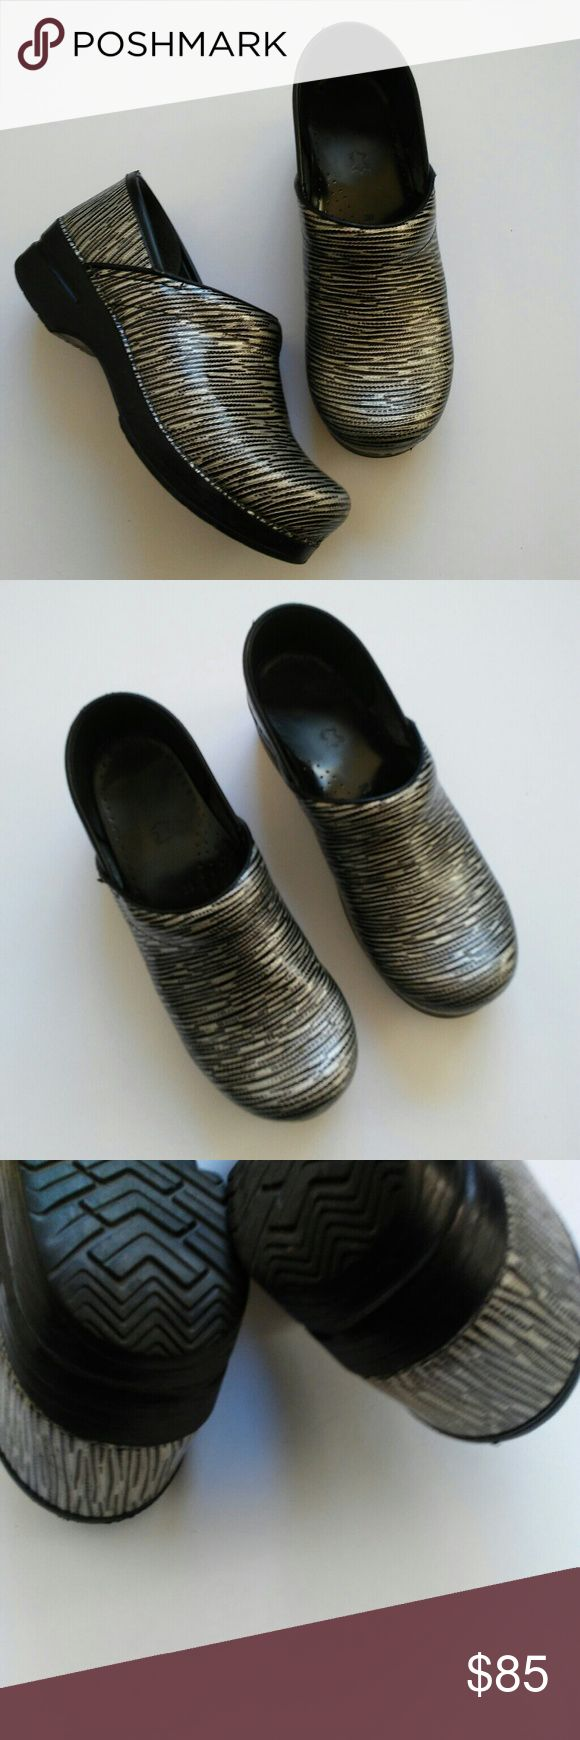 Dansko Clogs Silver Stripe Professional Nurse Excellent condition! Perfect for any season and profession with a lot of walking. Size 39 (8.5-9) according to dansko website.💕 Dansko Shoes Mules & Clogs